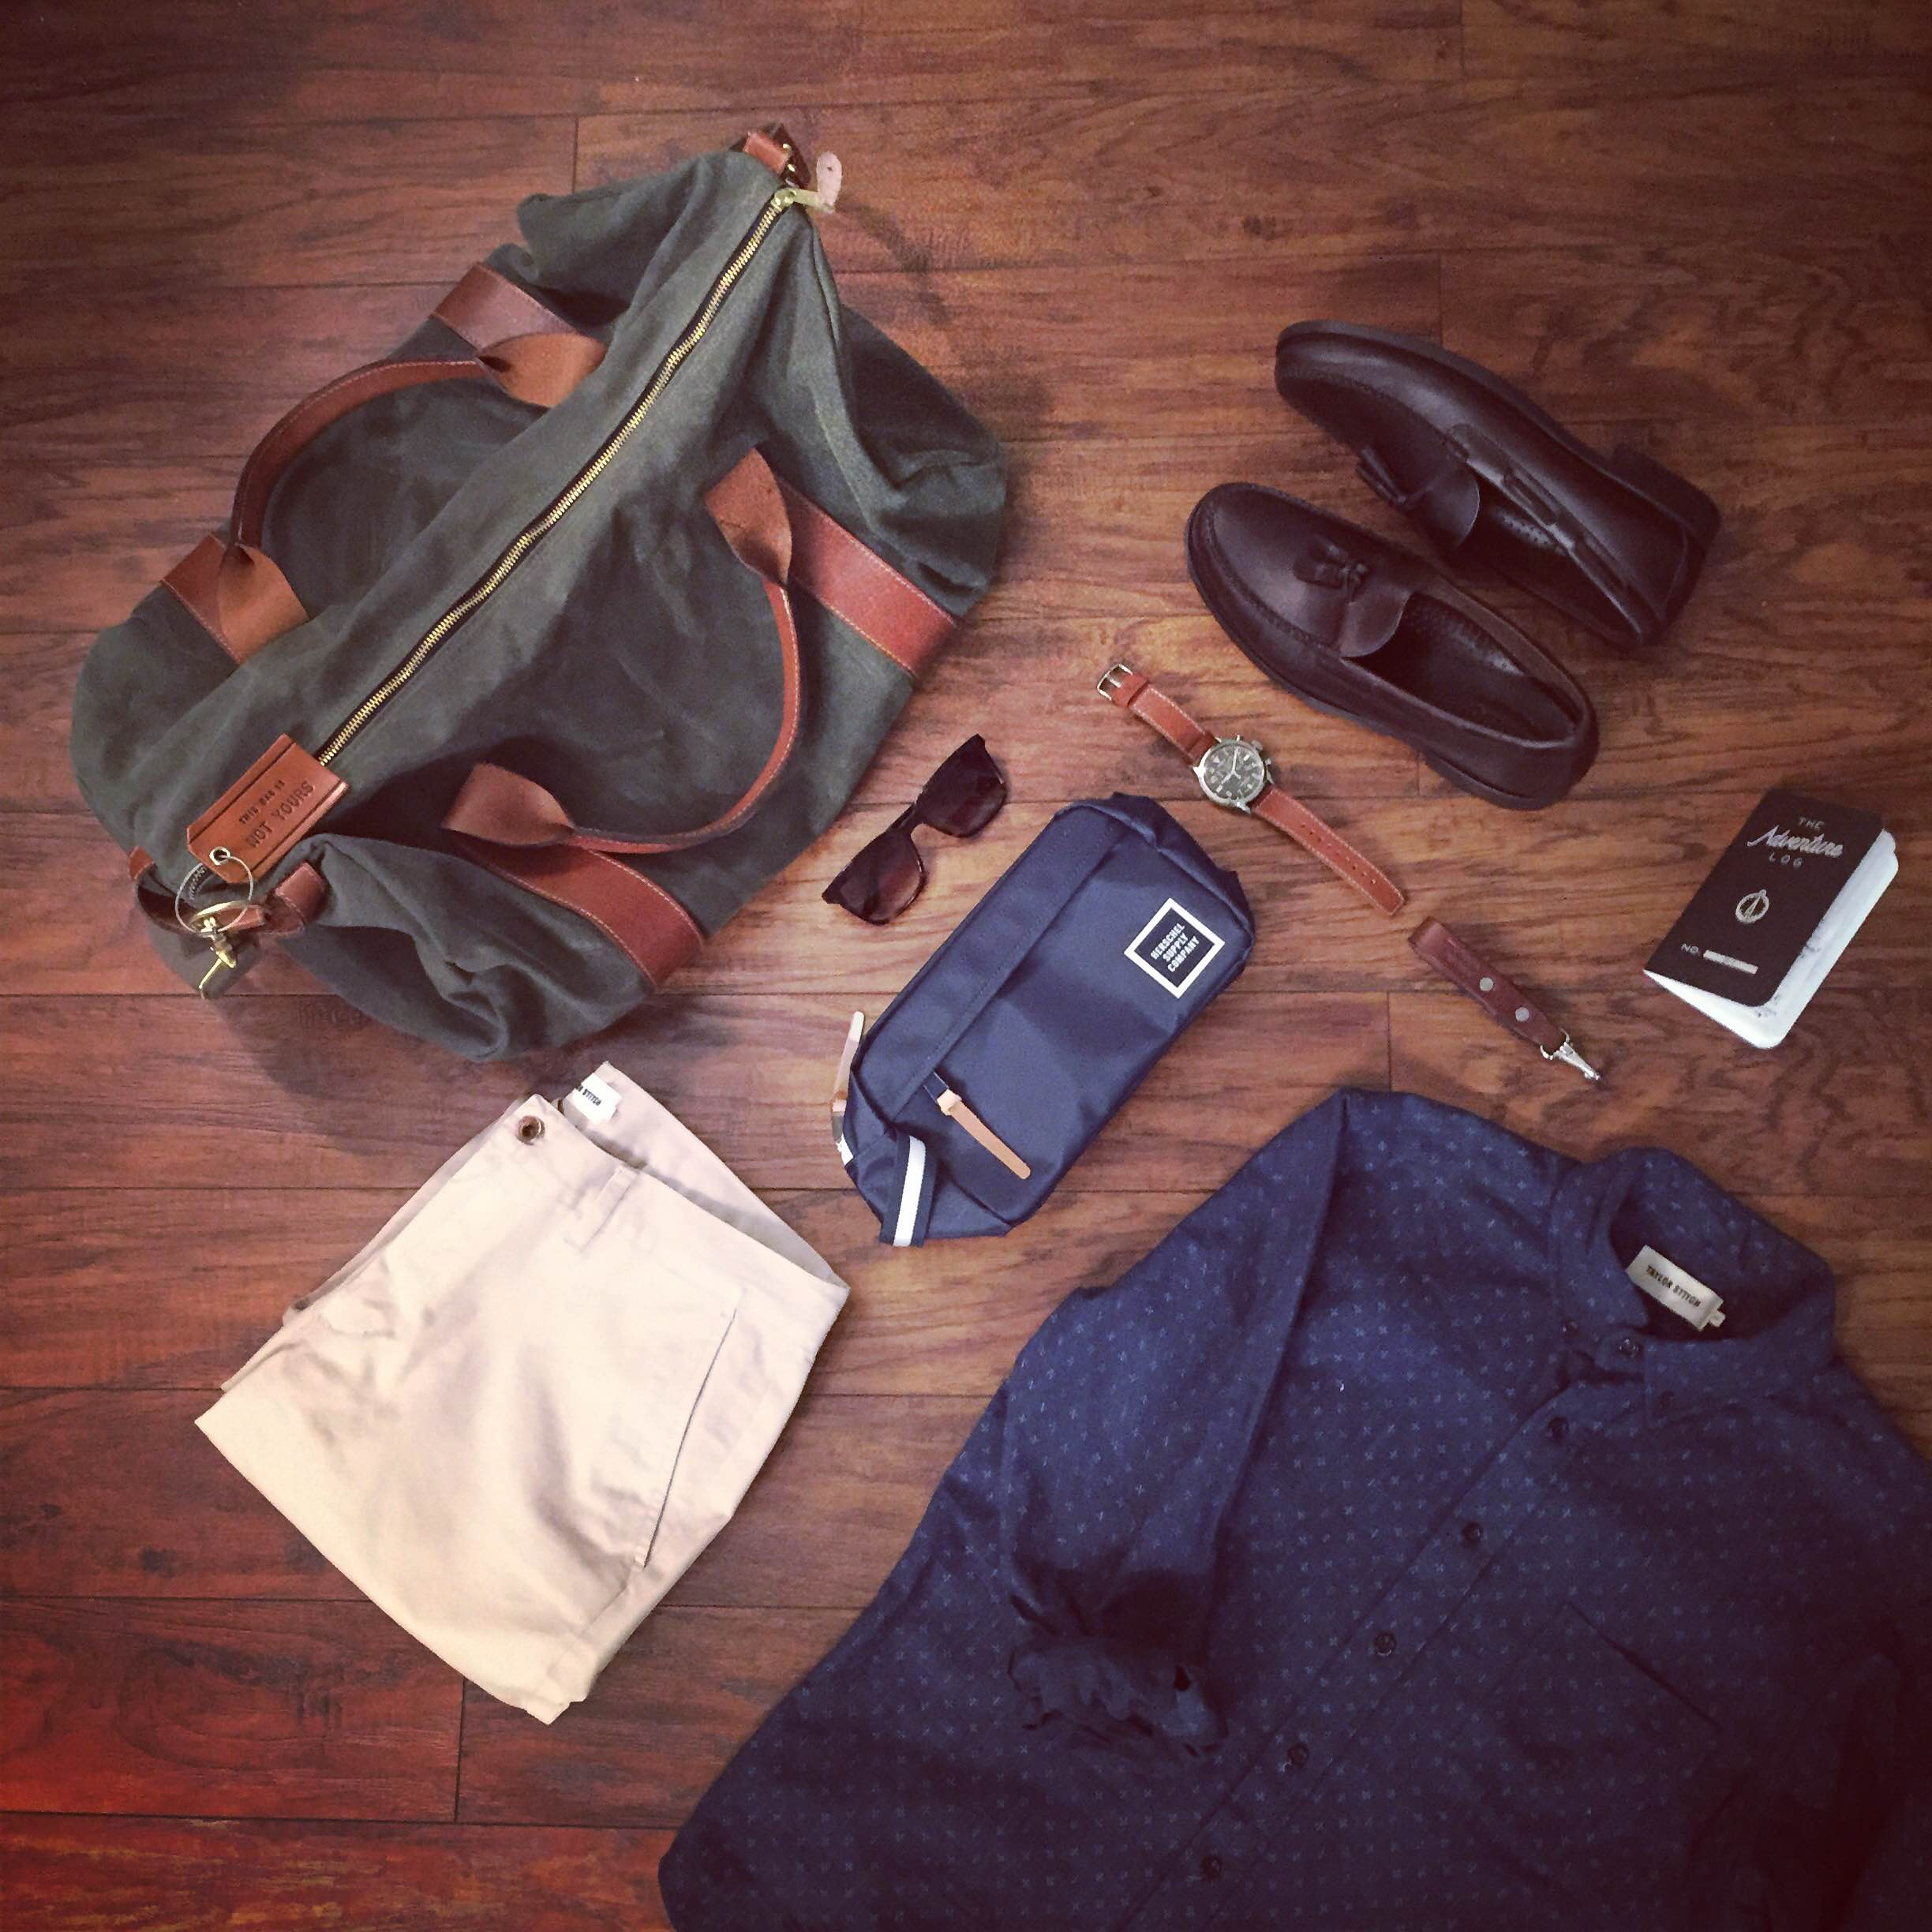 738870e86b7 The Voyager Waxed Weekender in tow for a stylish weekend. Chapter Travel Kit  by Herschel